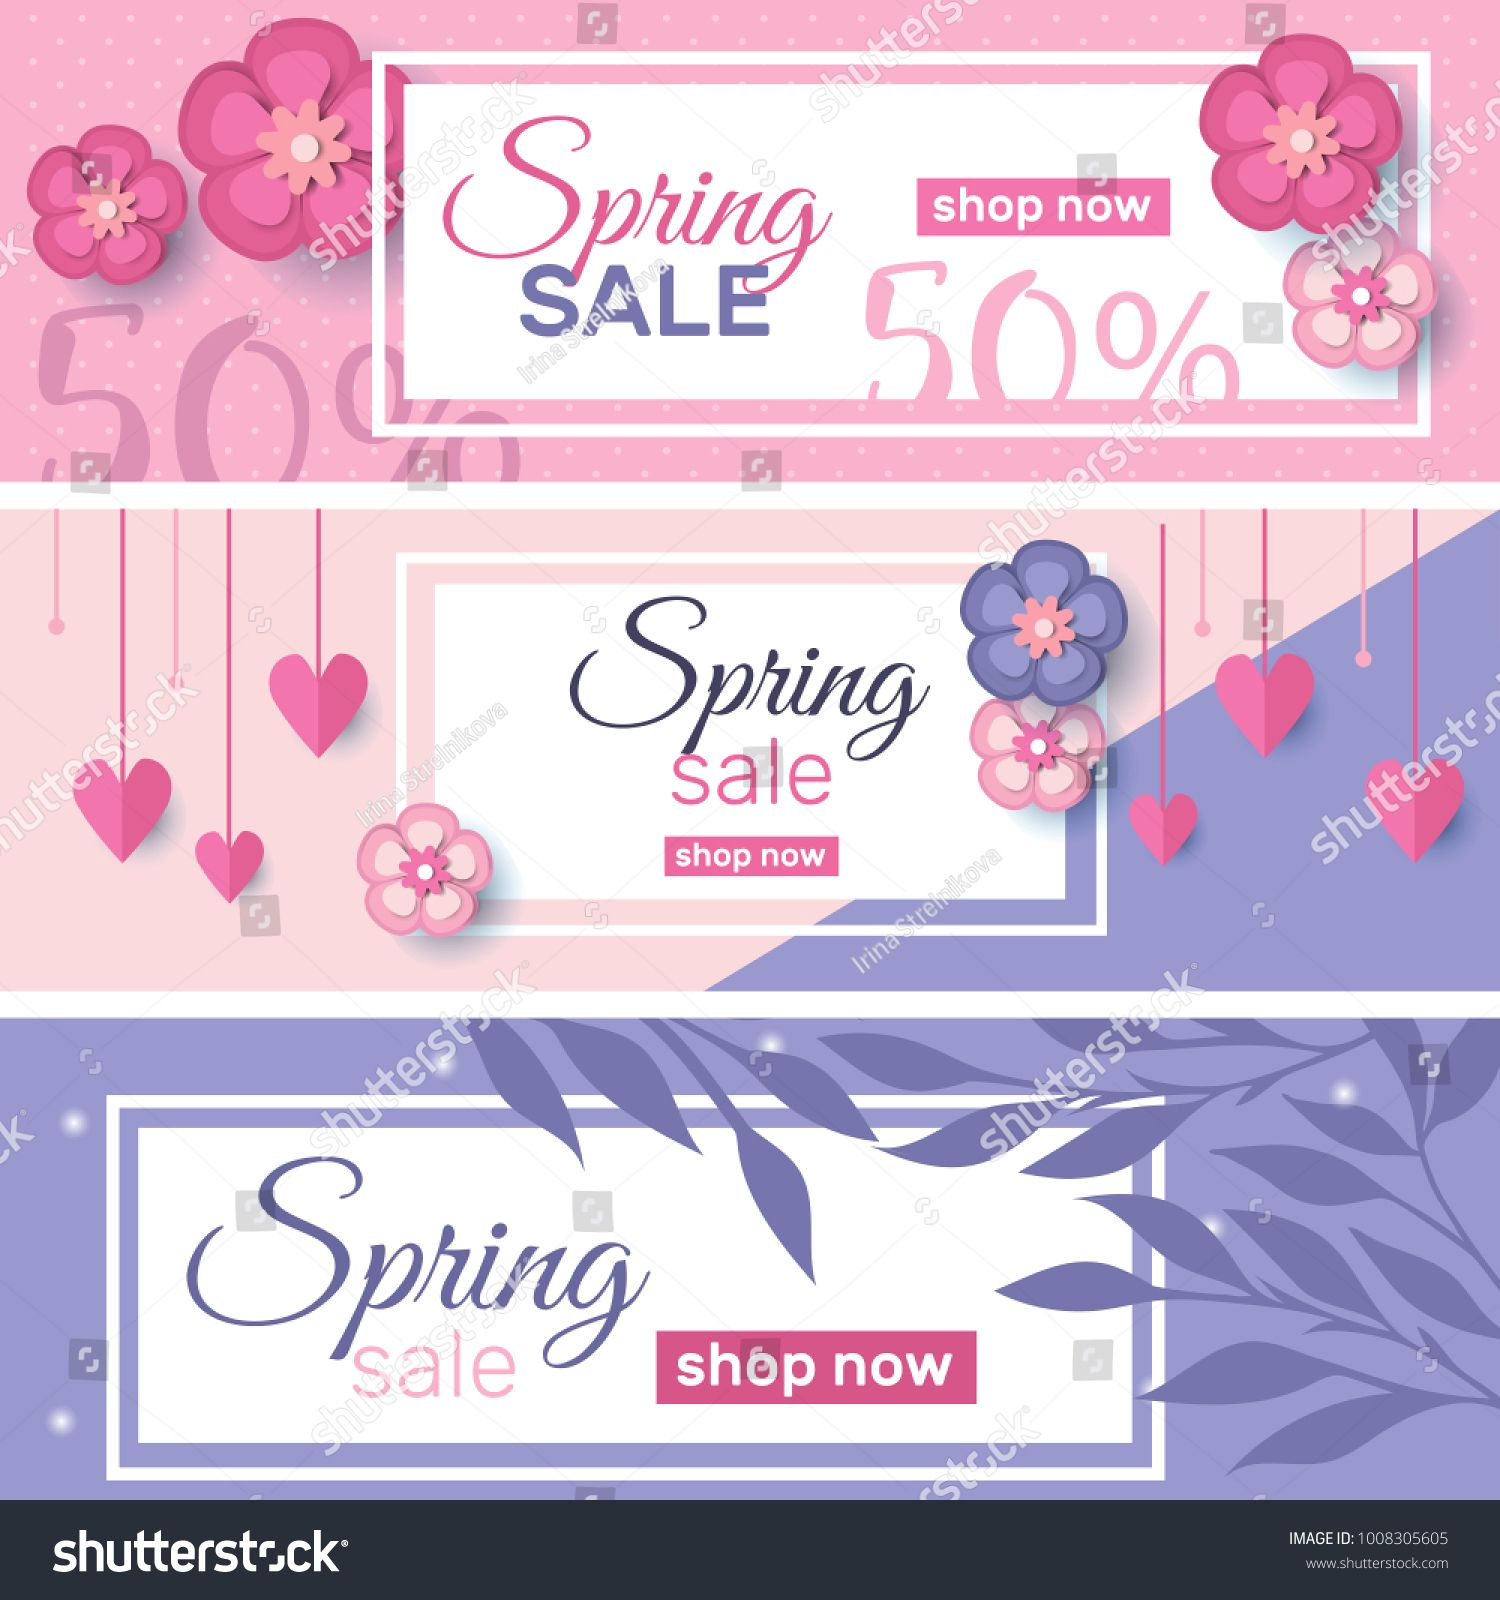 Spring Sale Concept Banners And Promotion Elements Vector